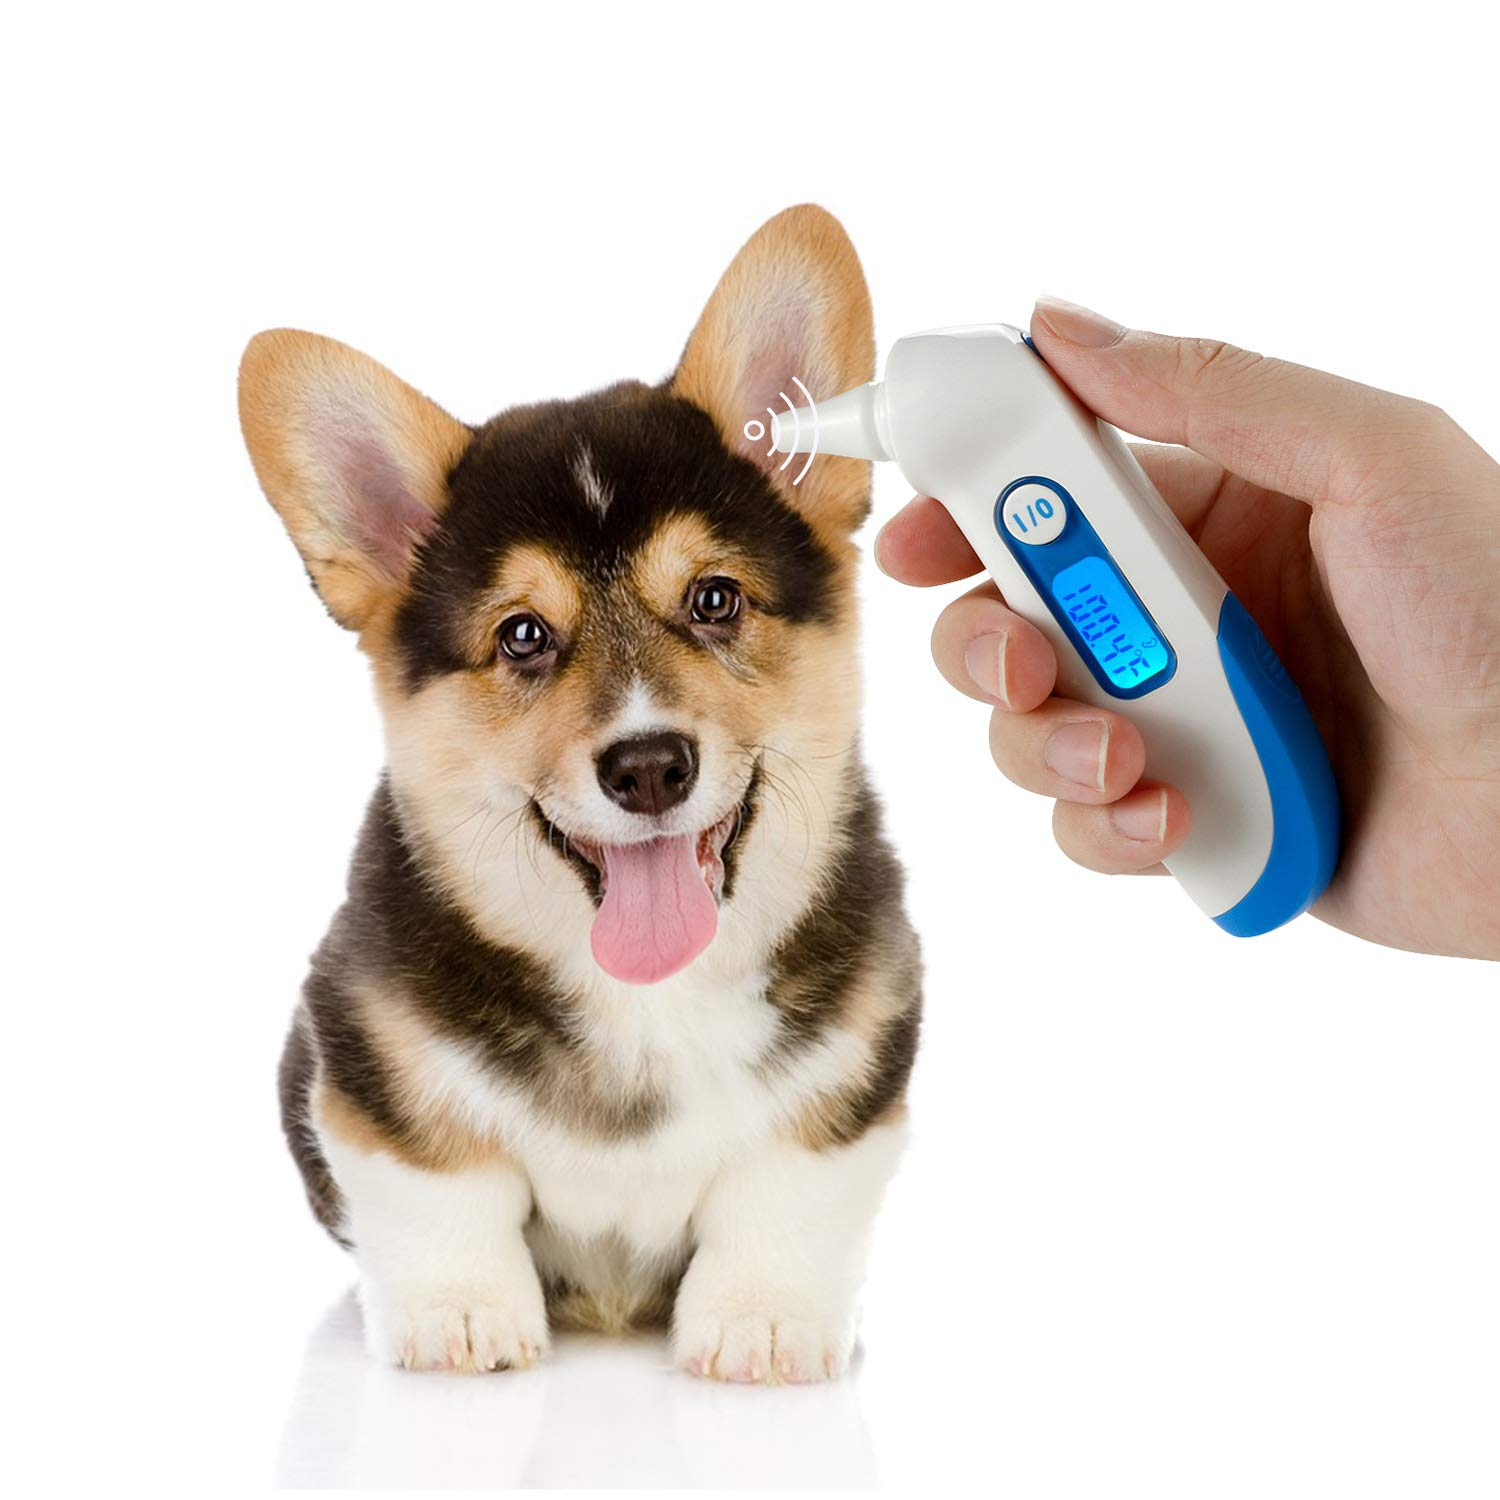 Pet Clinic Infrared Ear Thermometer for Dog Cat, Veterinary Thermometer Measure Ear Canal Temperature in 1s, Suitable for All Pets C/F switchable by iCare-Pet (Image #1)